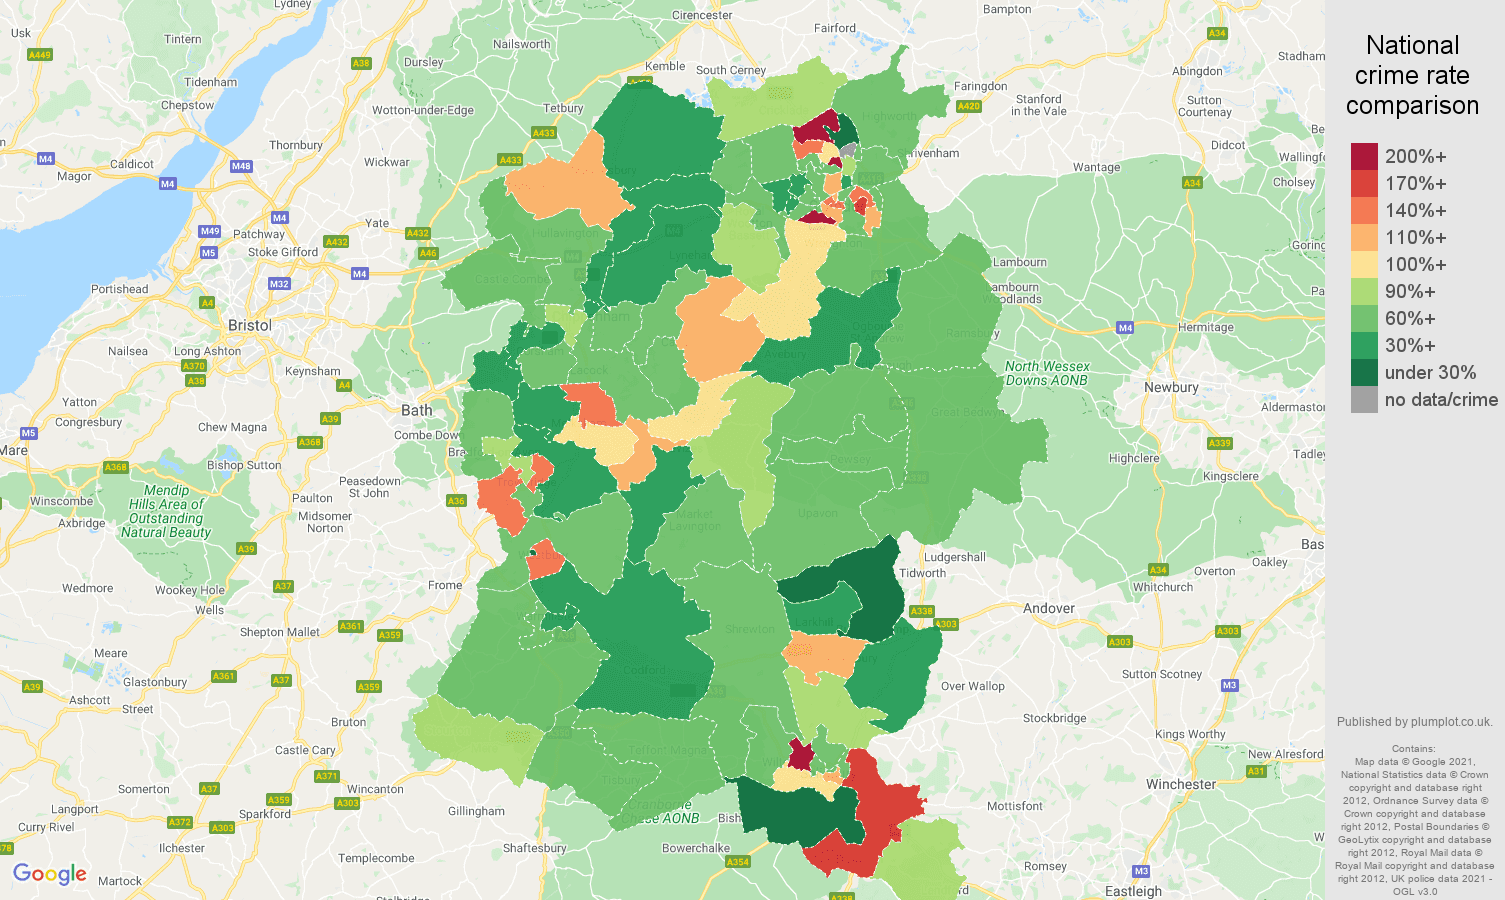 Wiltshire criminal damage and arson crime rate comparison map